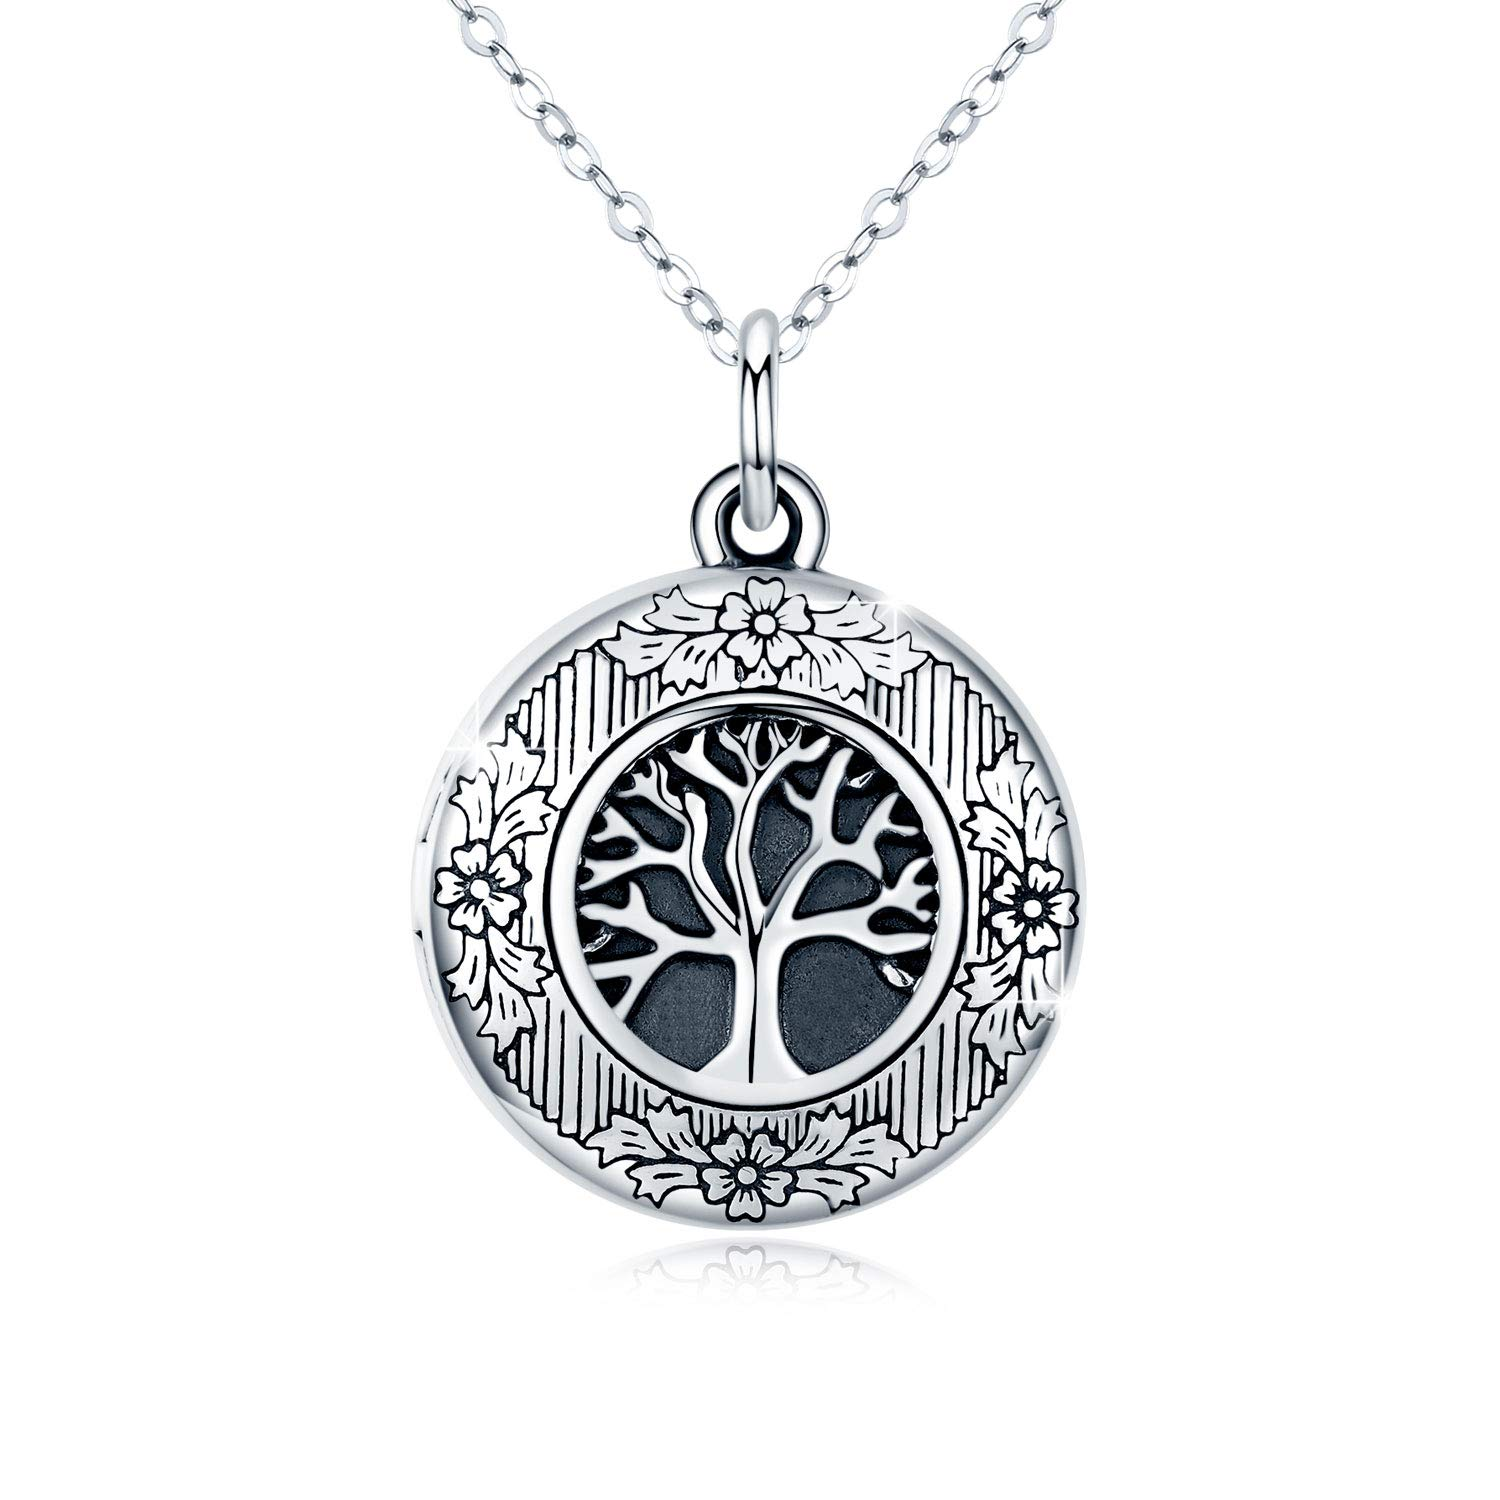 Tree of Life Locket Necklace, Locket Necklace That Holds Pictures S925 Sterling Silver Vintage Oxidized Tree of Life photo Pendant Family Gifts for Women Teen (White) by CUOKA MIRACLE